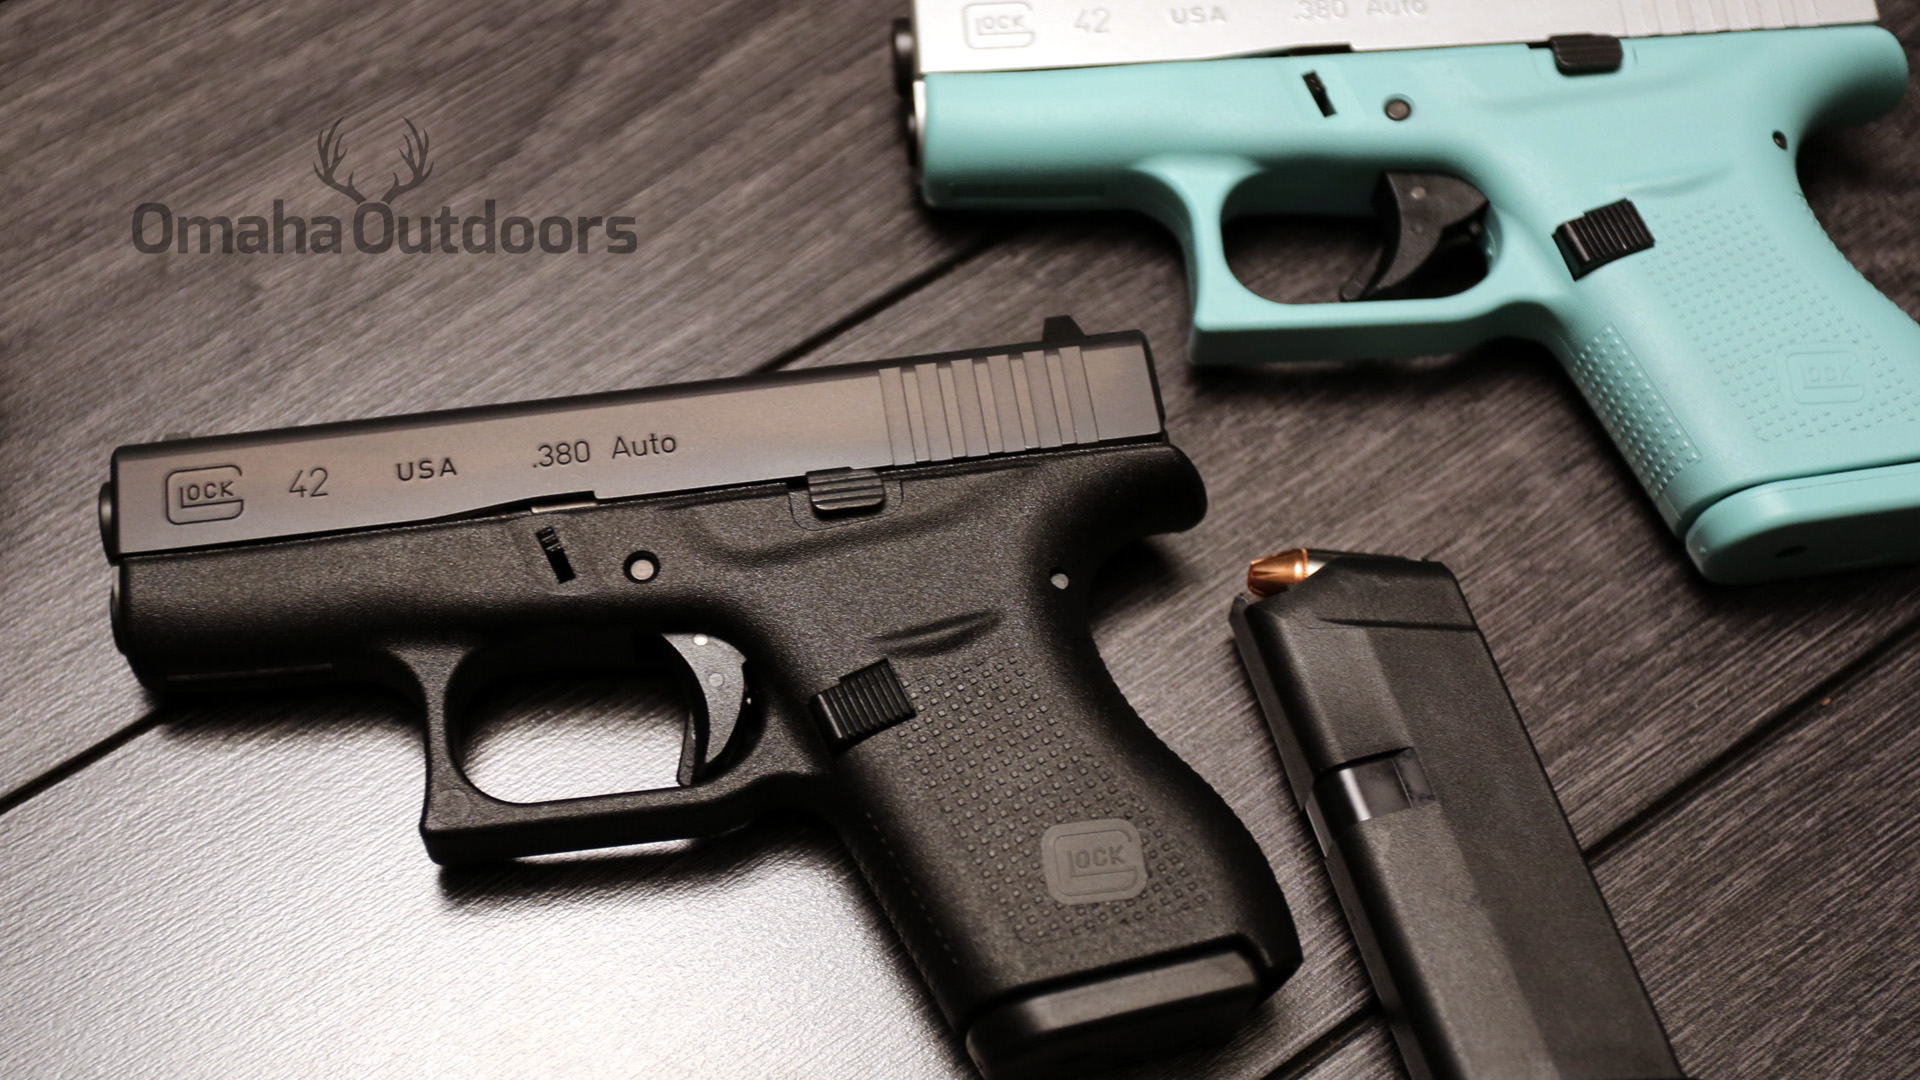 Gun Review: Glock 42 - Conceal Carry Gun That Won't Disappoint